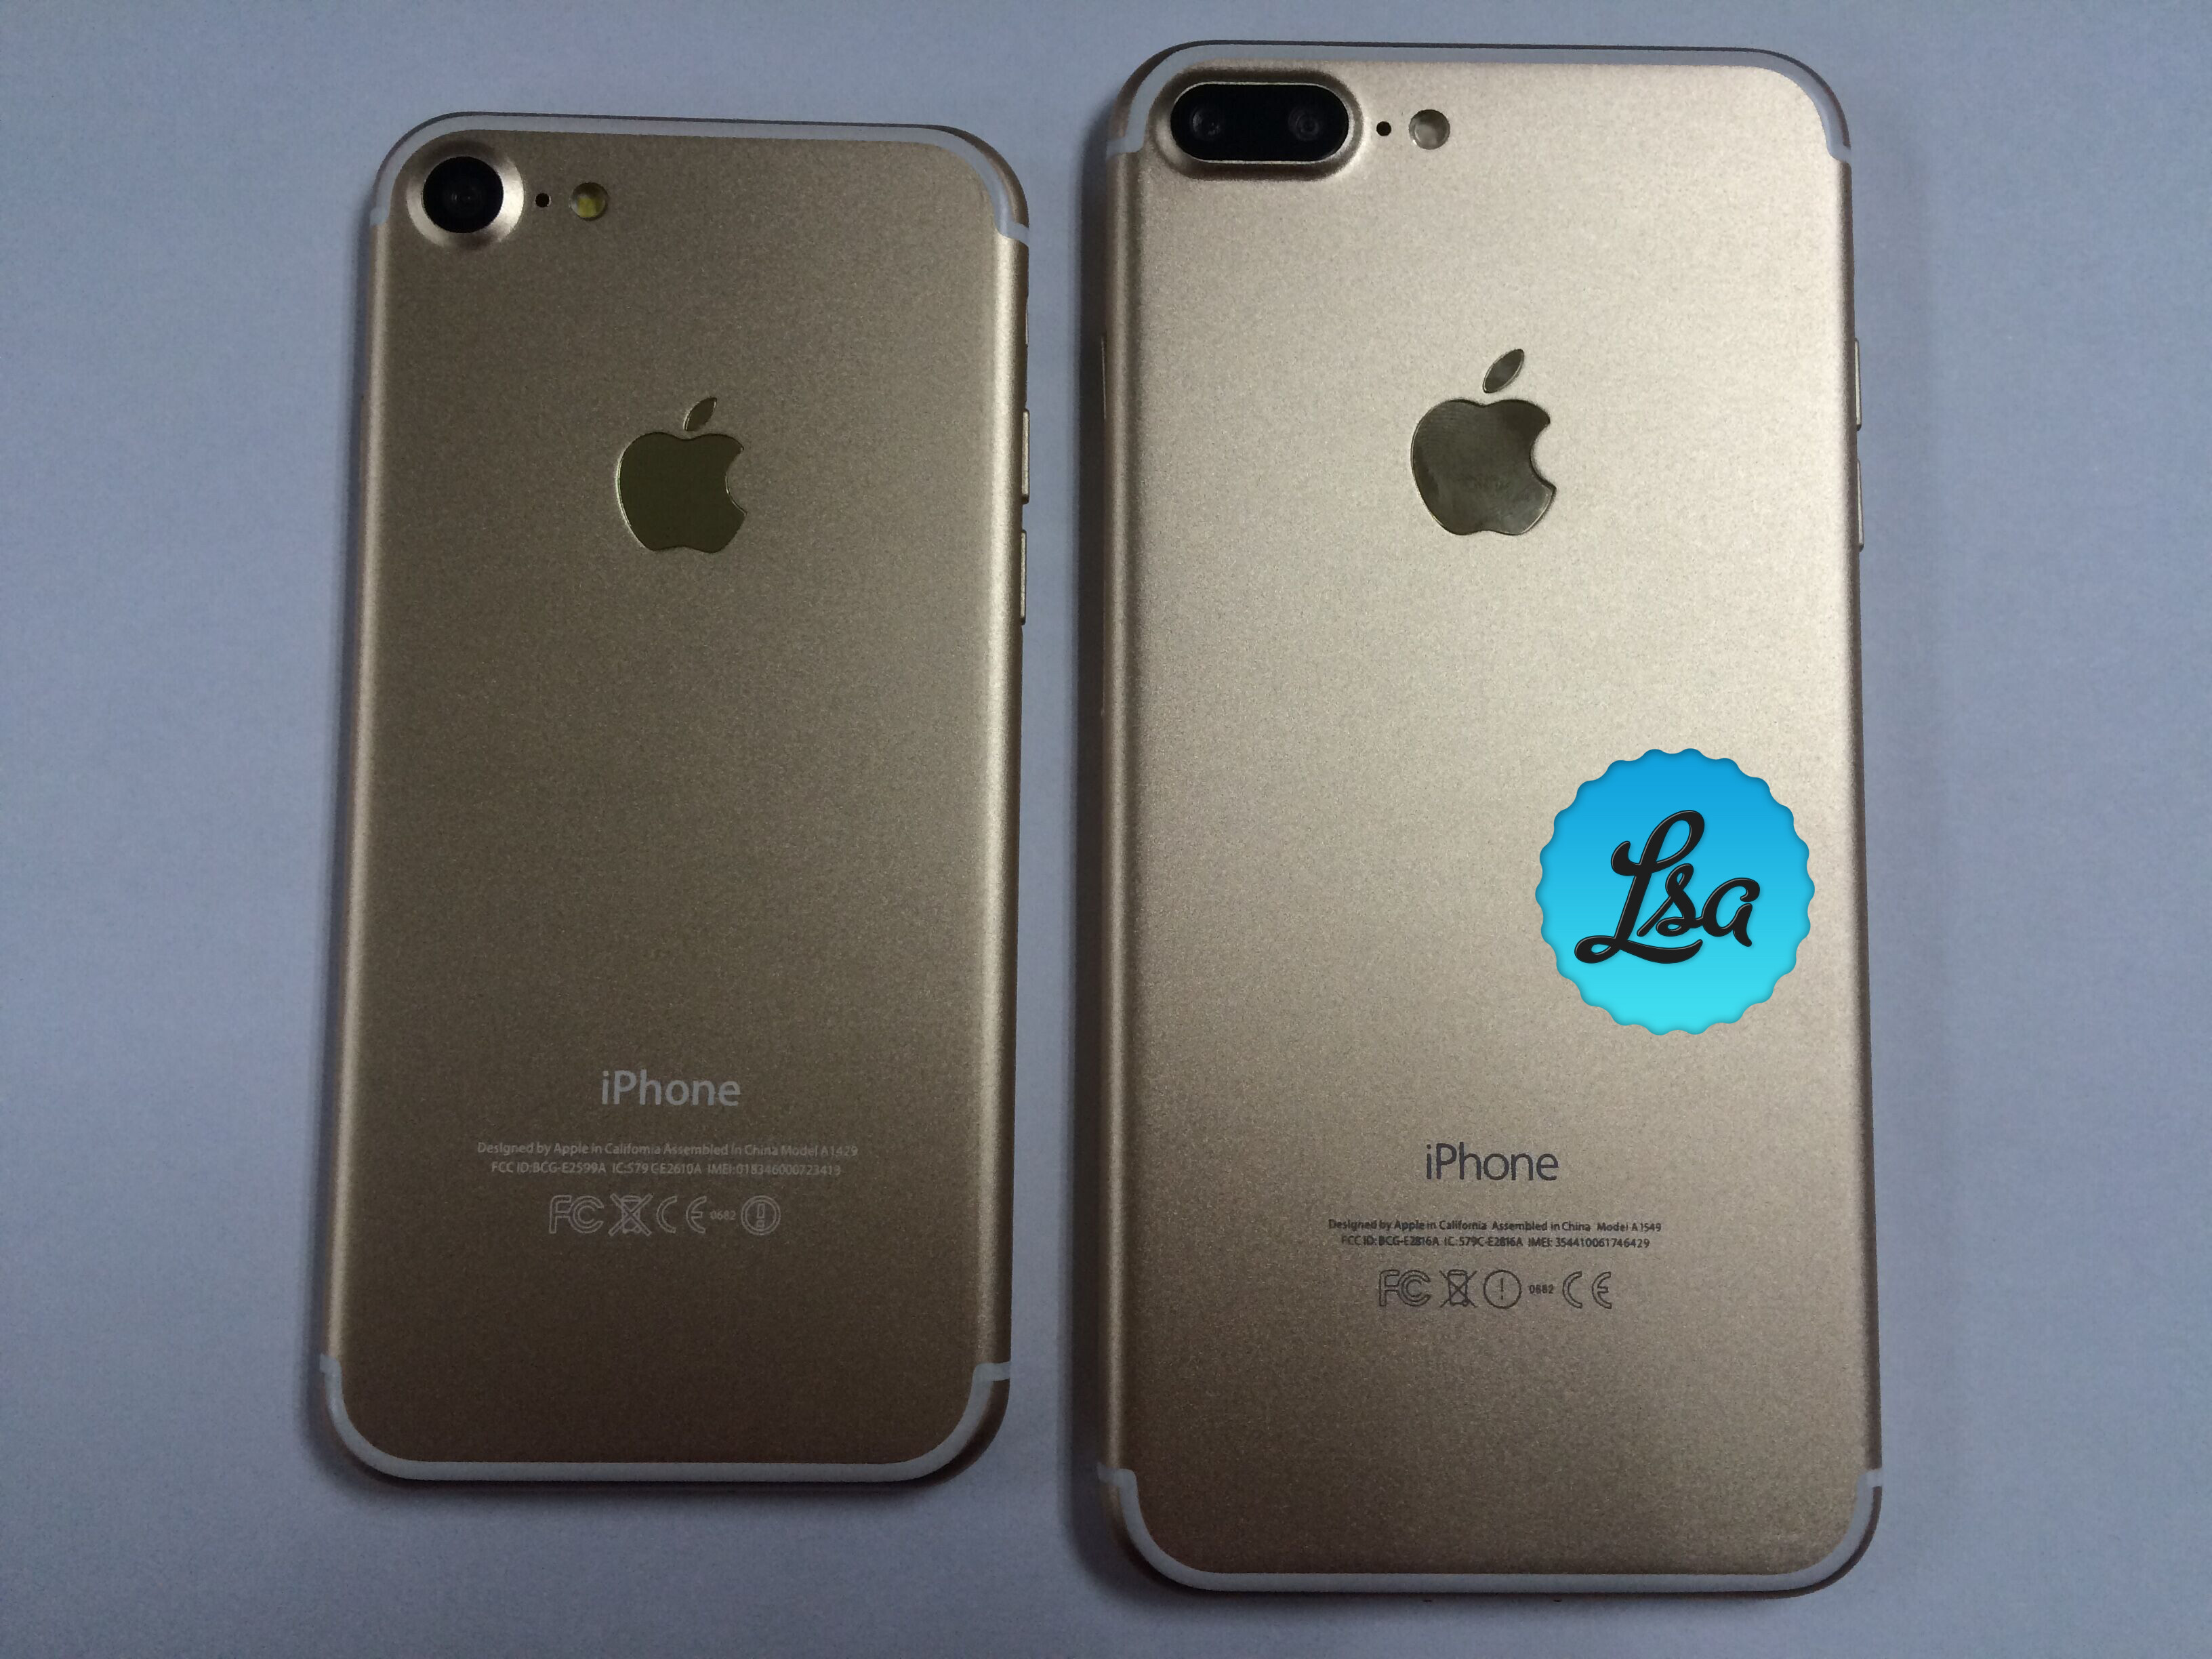 Apple iphone 6 vs apple iphone 6 plus - Gold And Space Black Apple Iphone 7 And Iphone 7 Plus